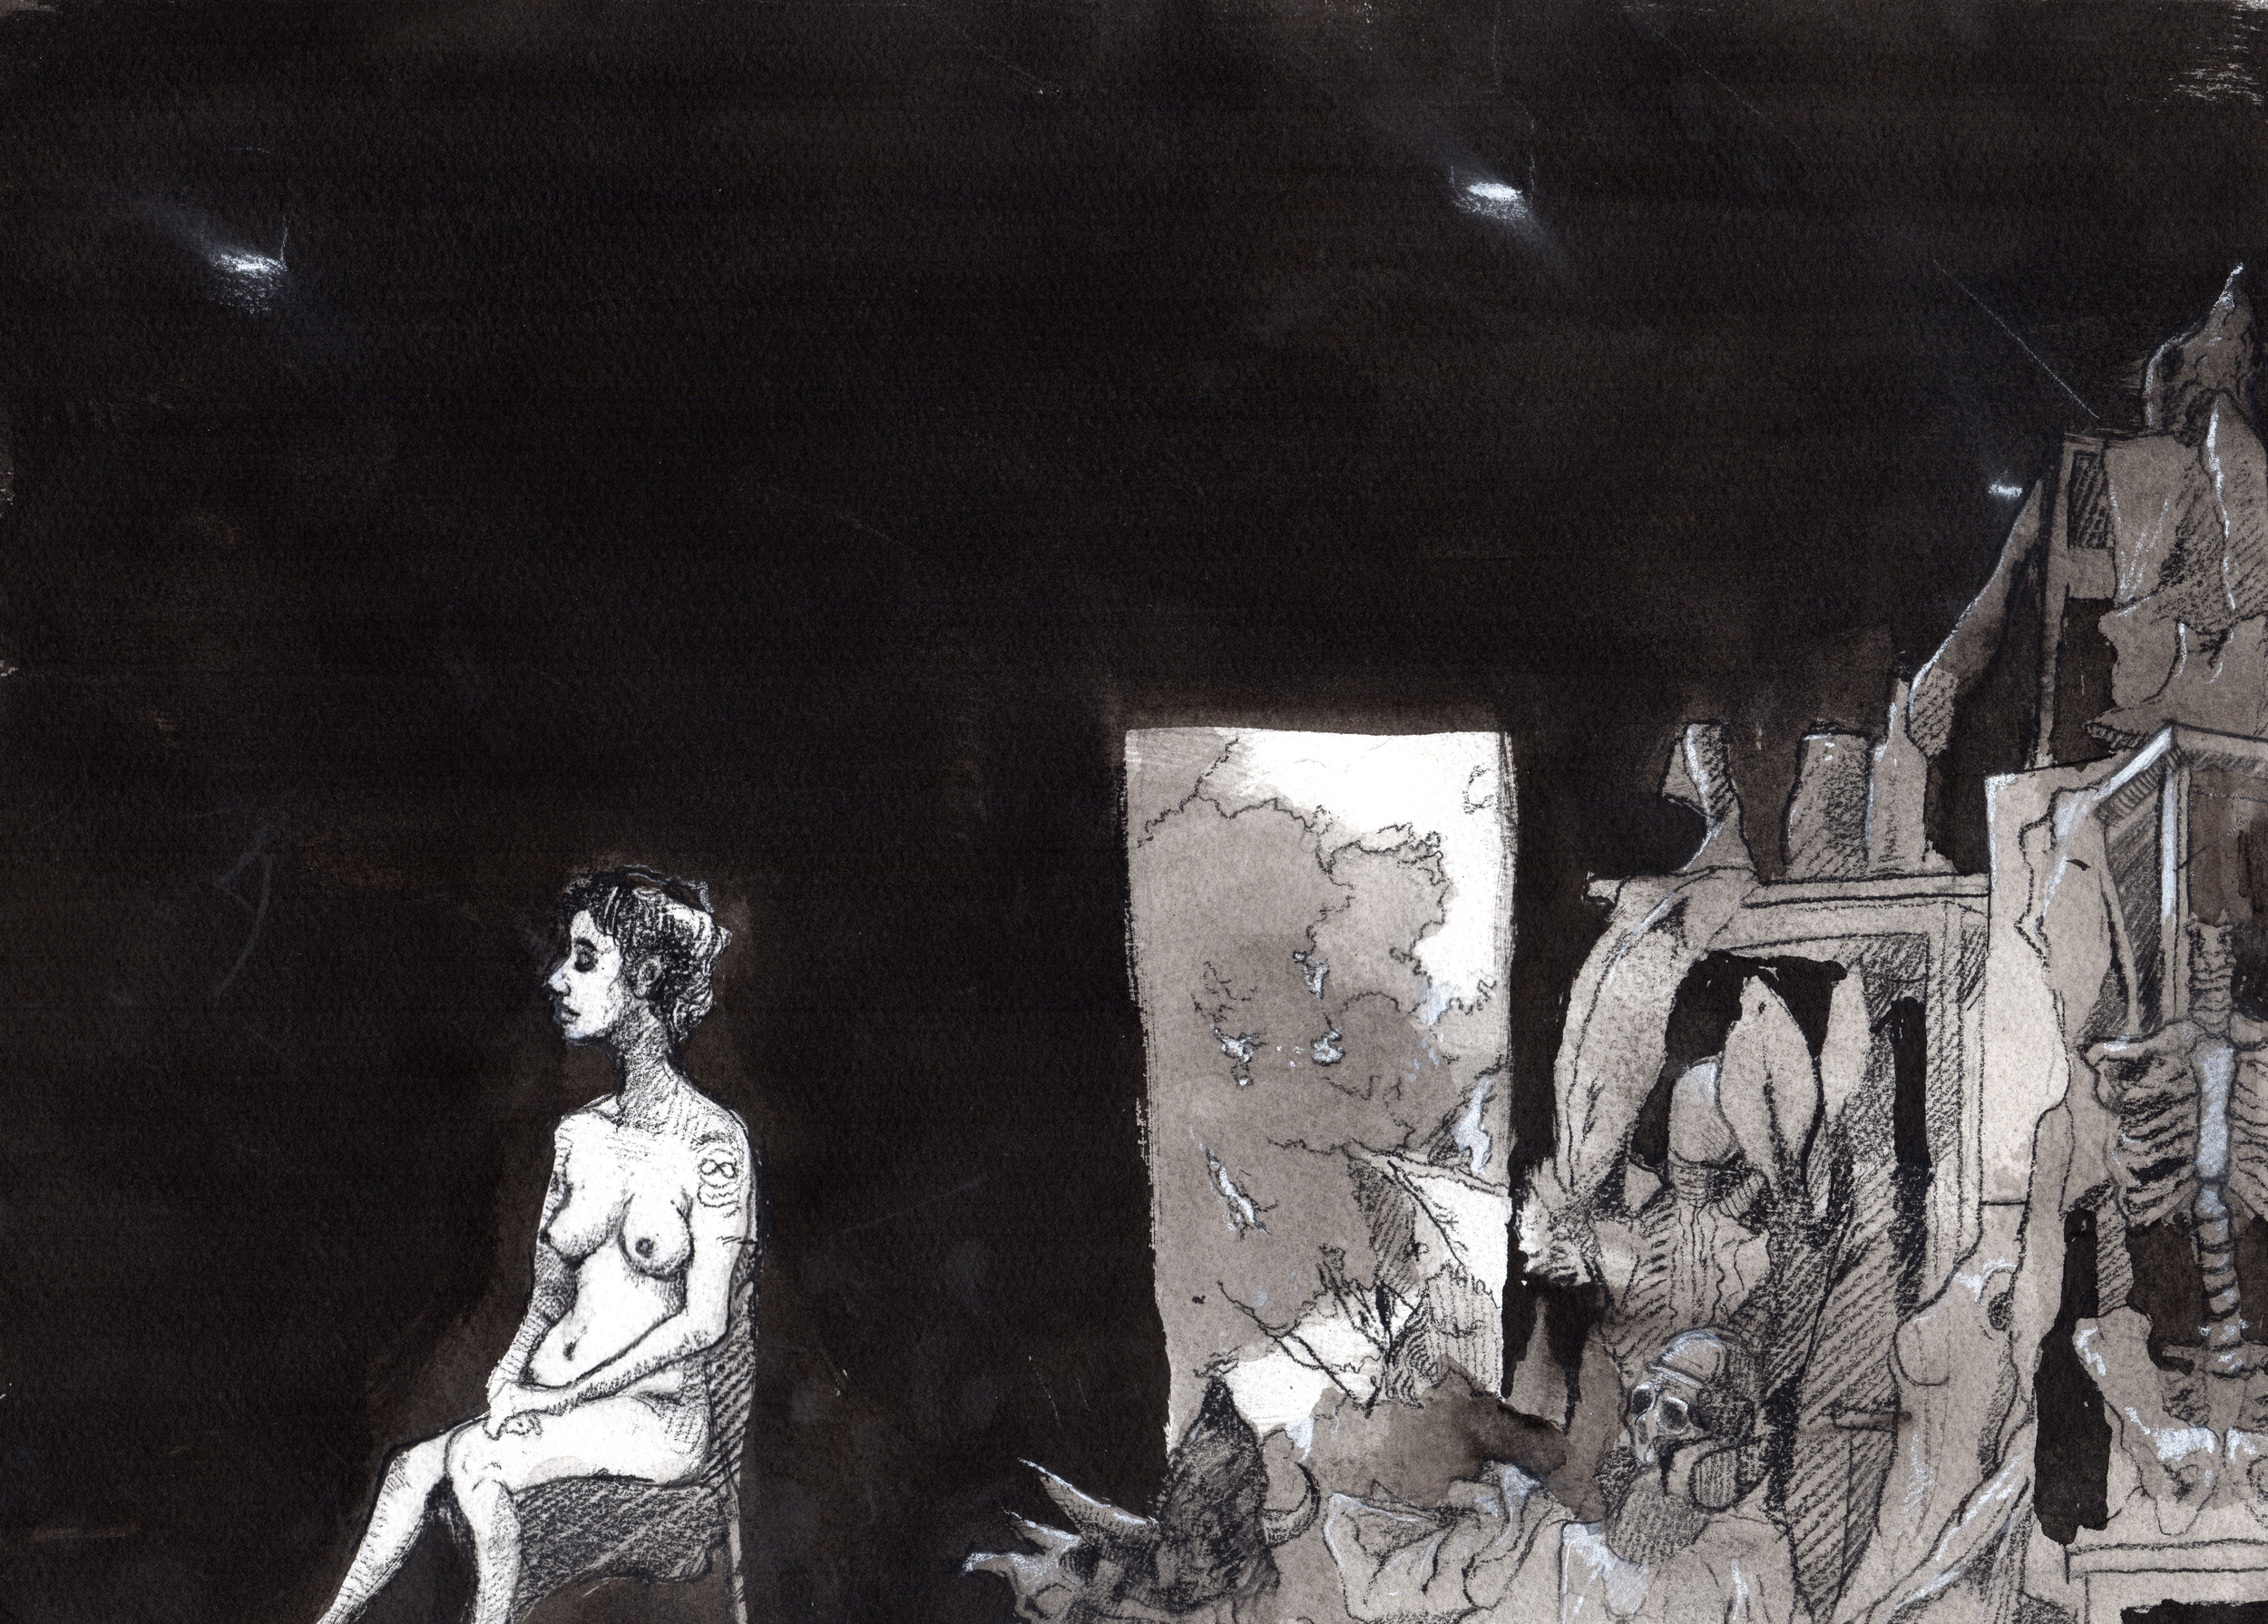 All the gods we loved  . 2013. 15 x 10 inches. Ink wash on paper.